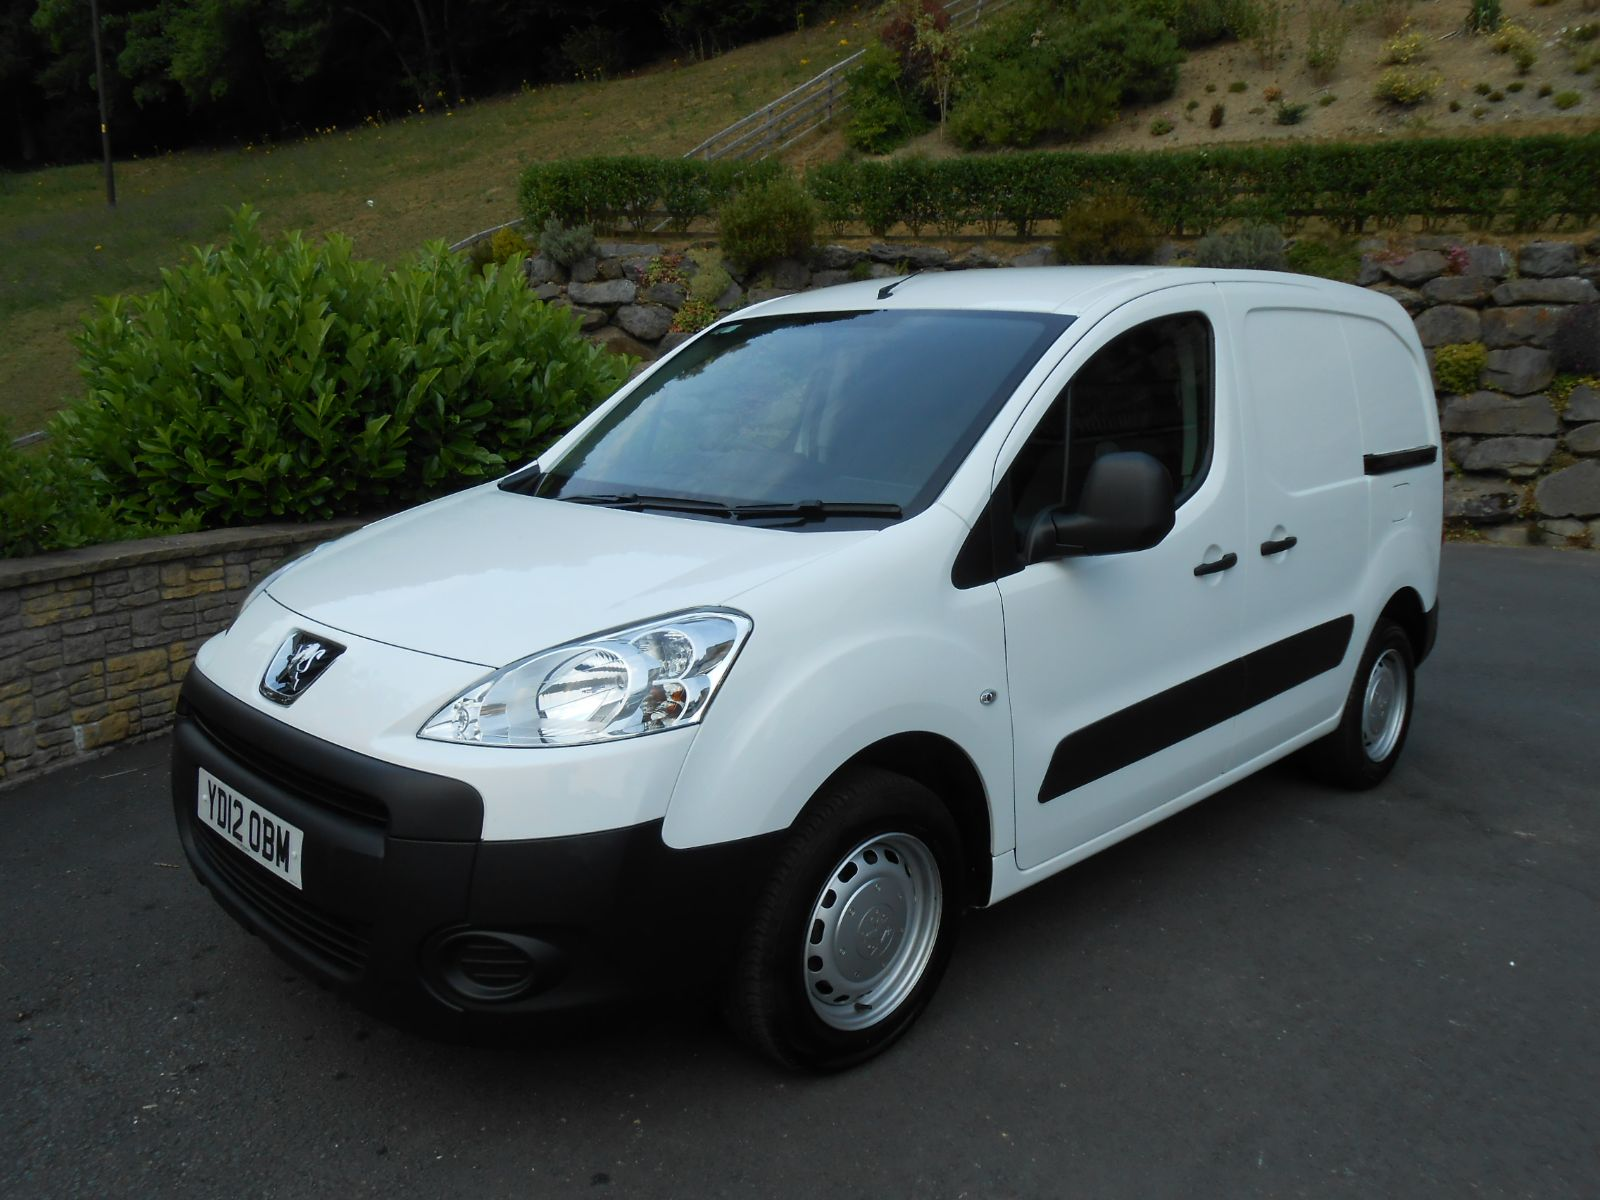 Peugeot Partner 1 6 Hdi 90 L1 850 S Car For Sale Llanidloes Powys Mid Wales Kevin